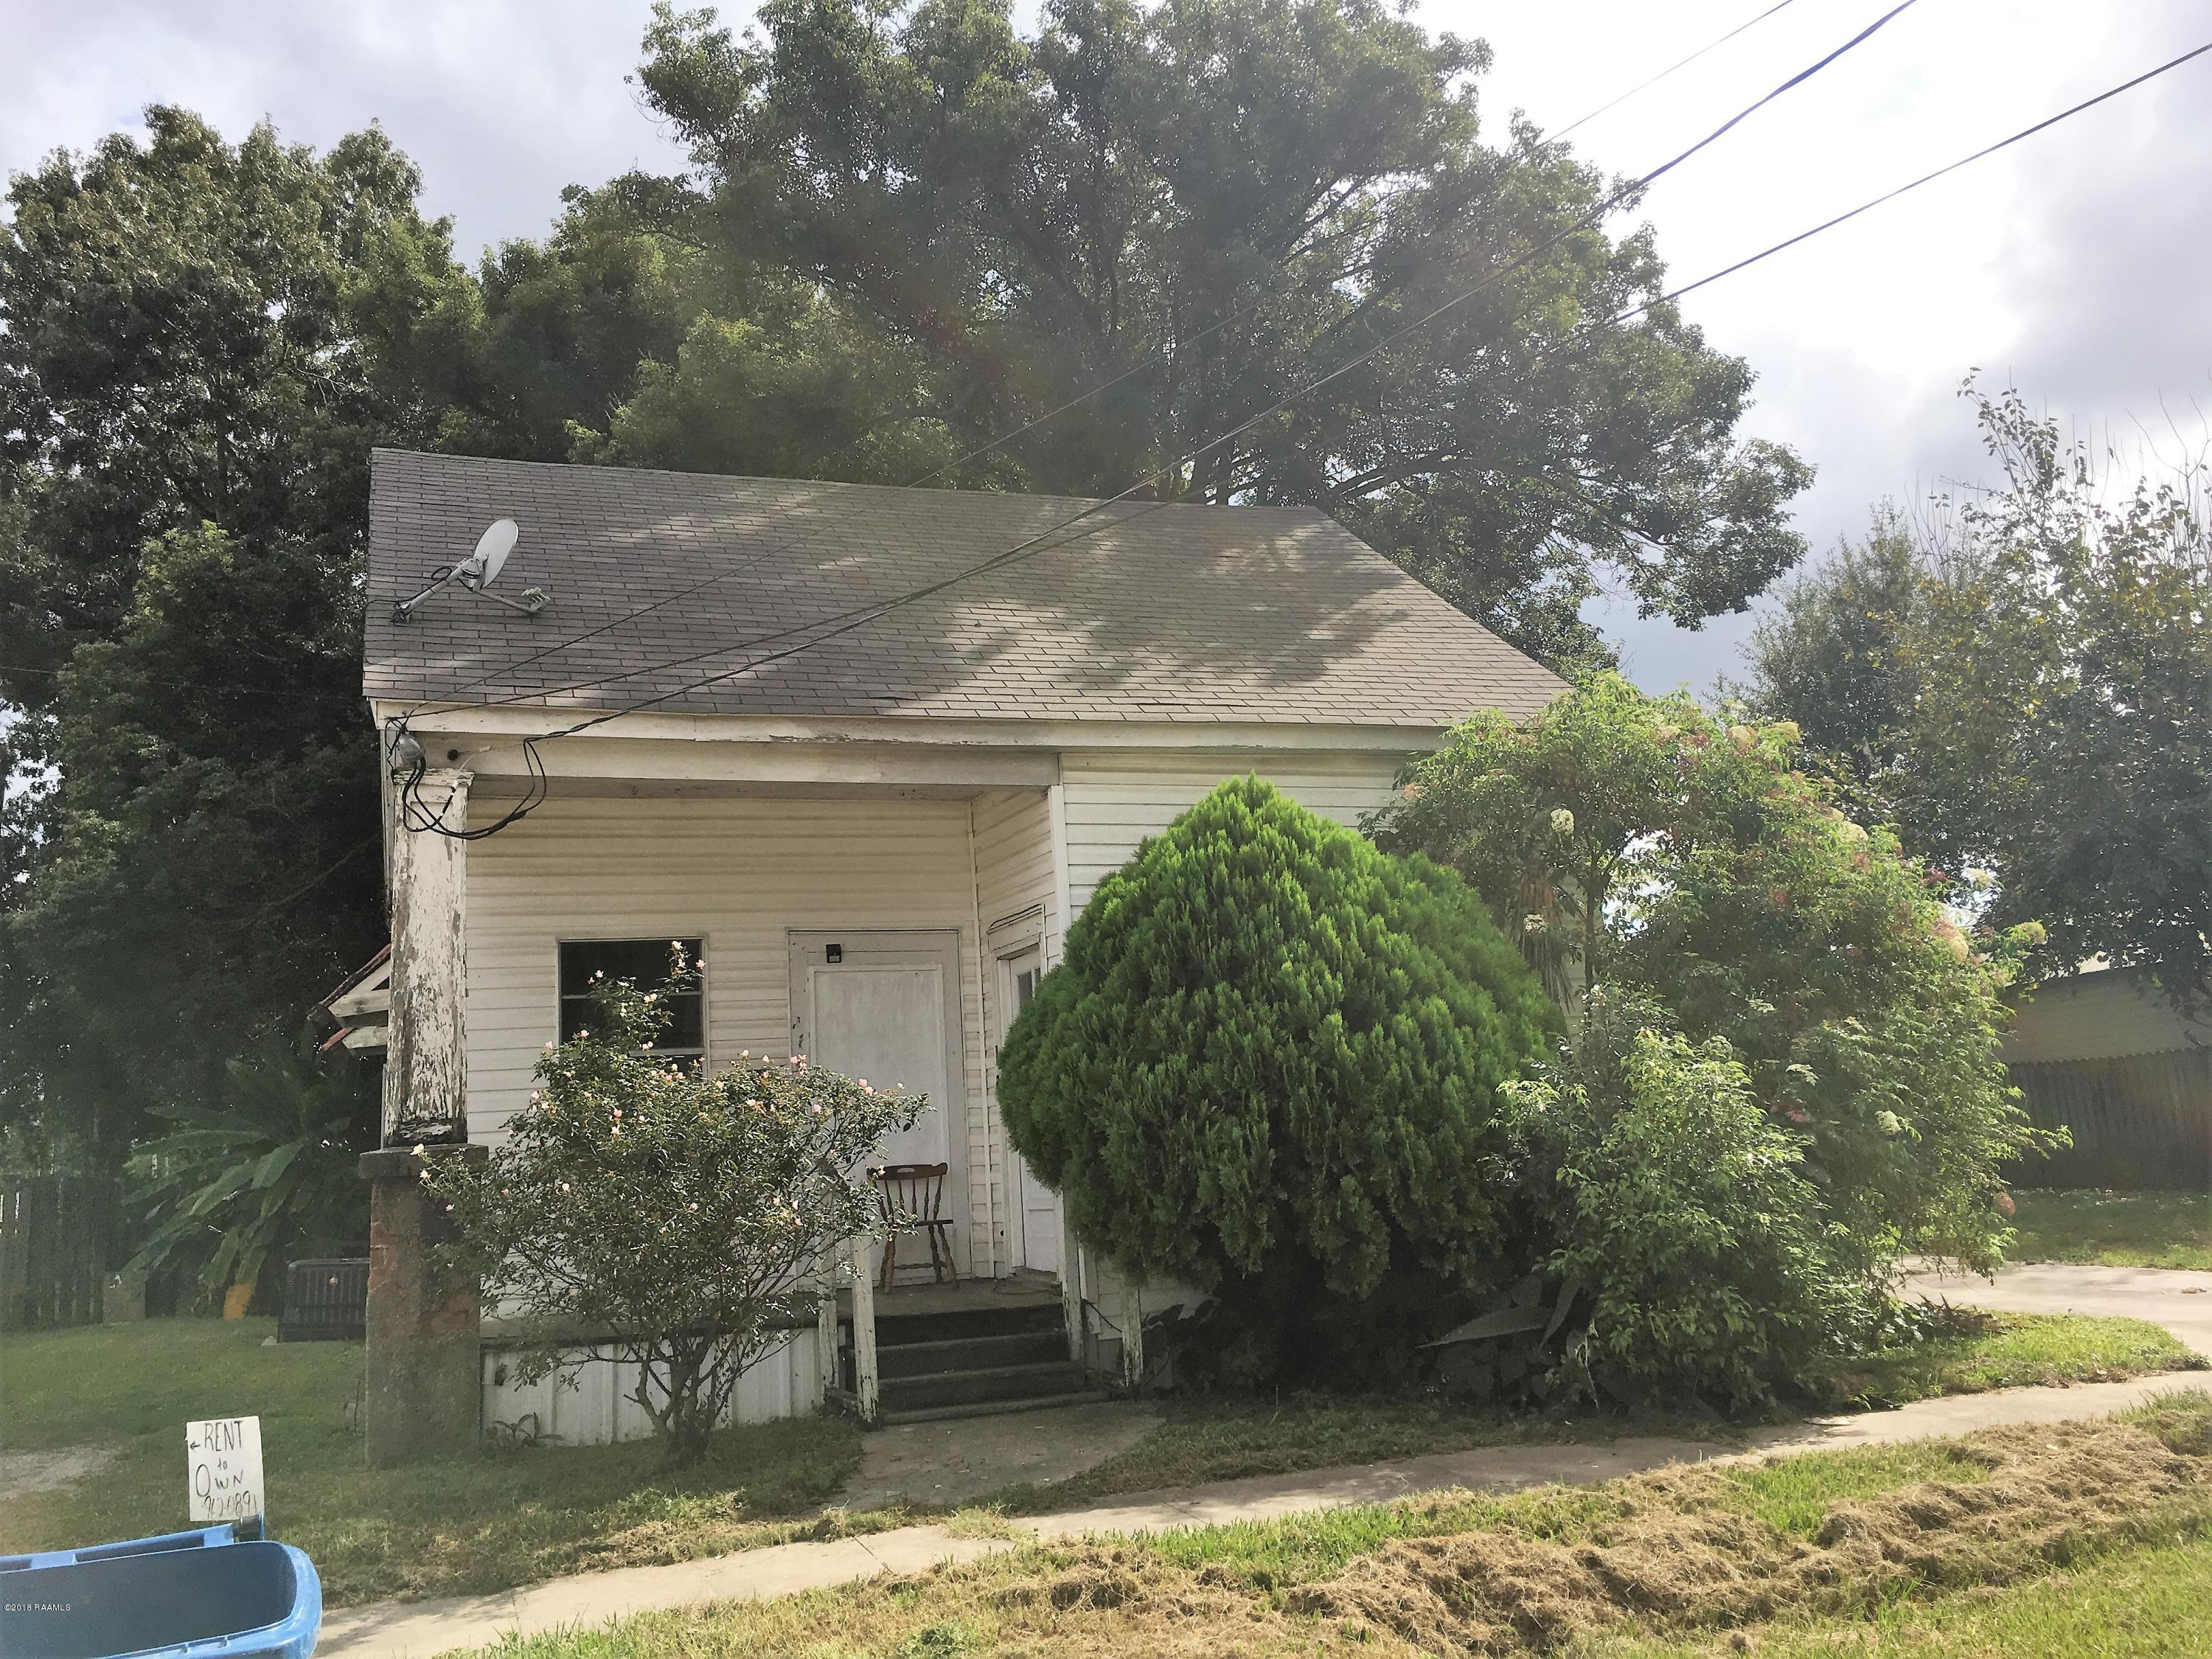 214 Eighth Street, Lafayette, LA 70506 Photo #1